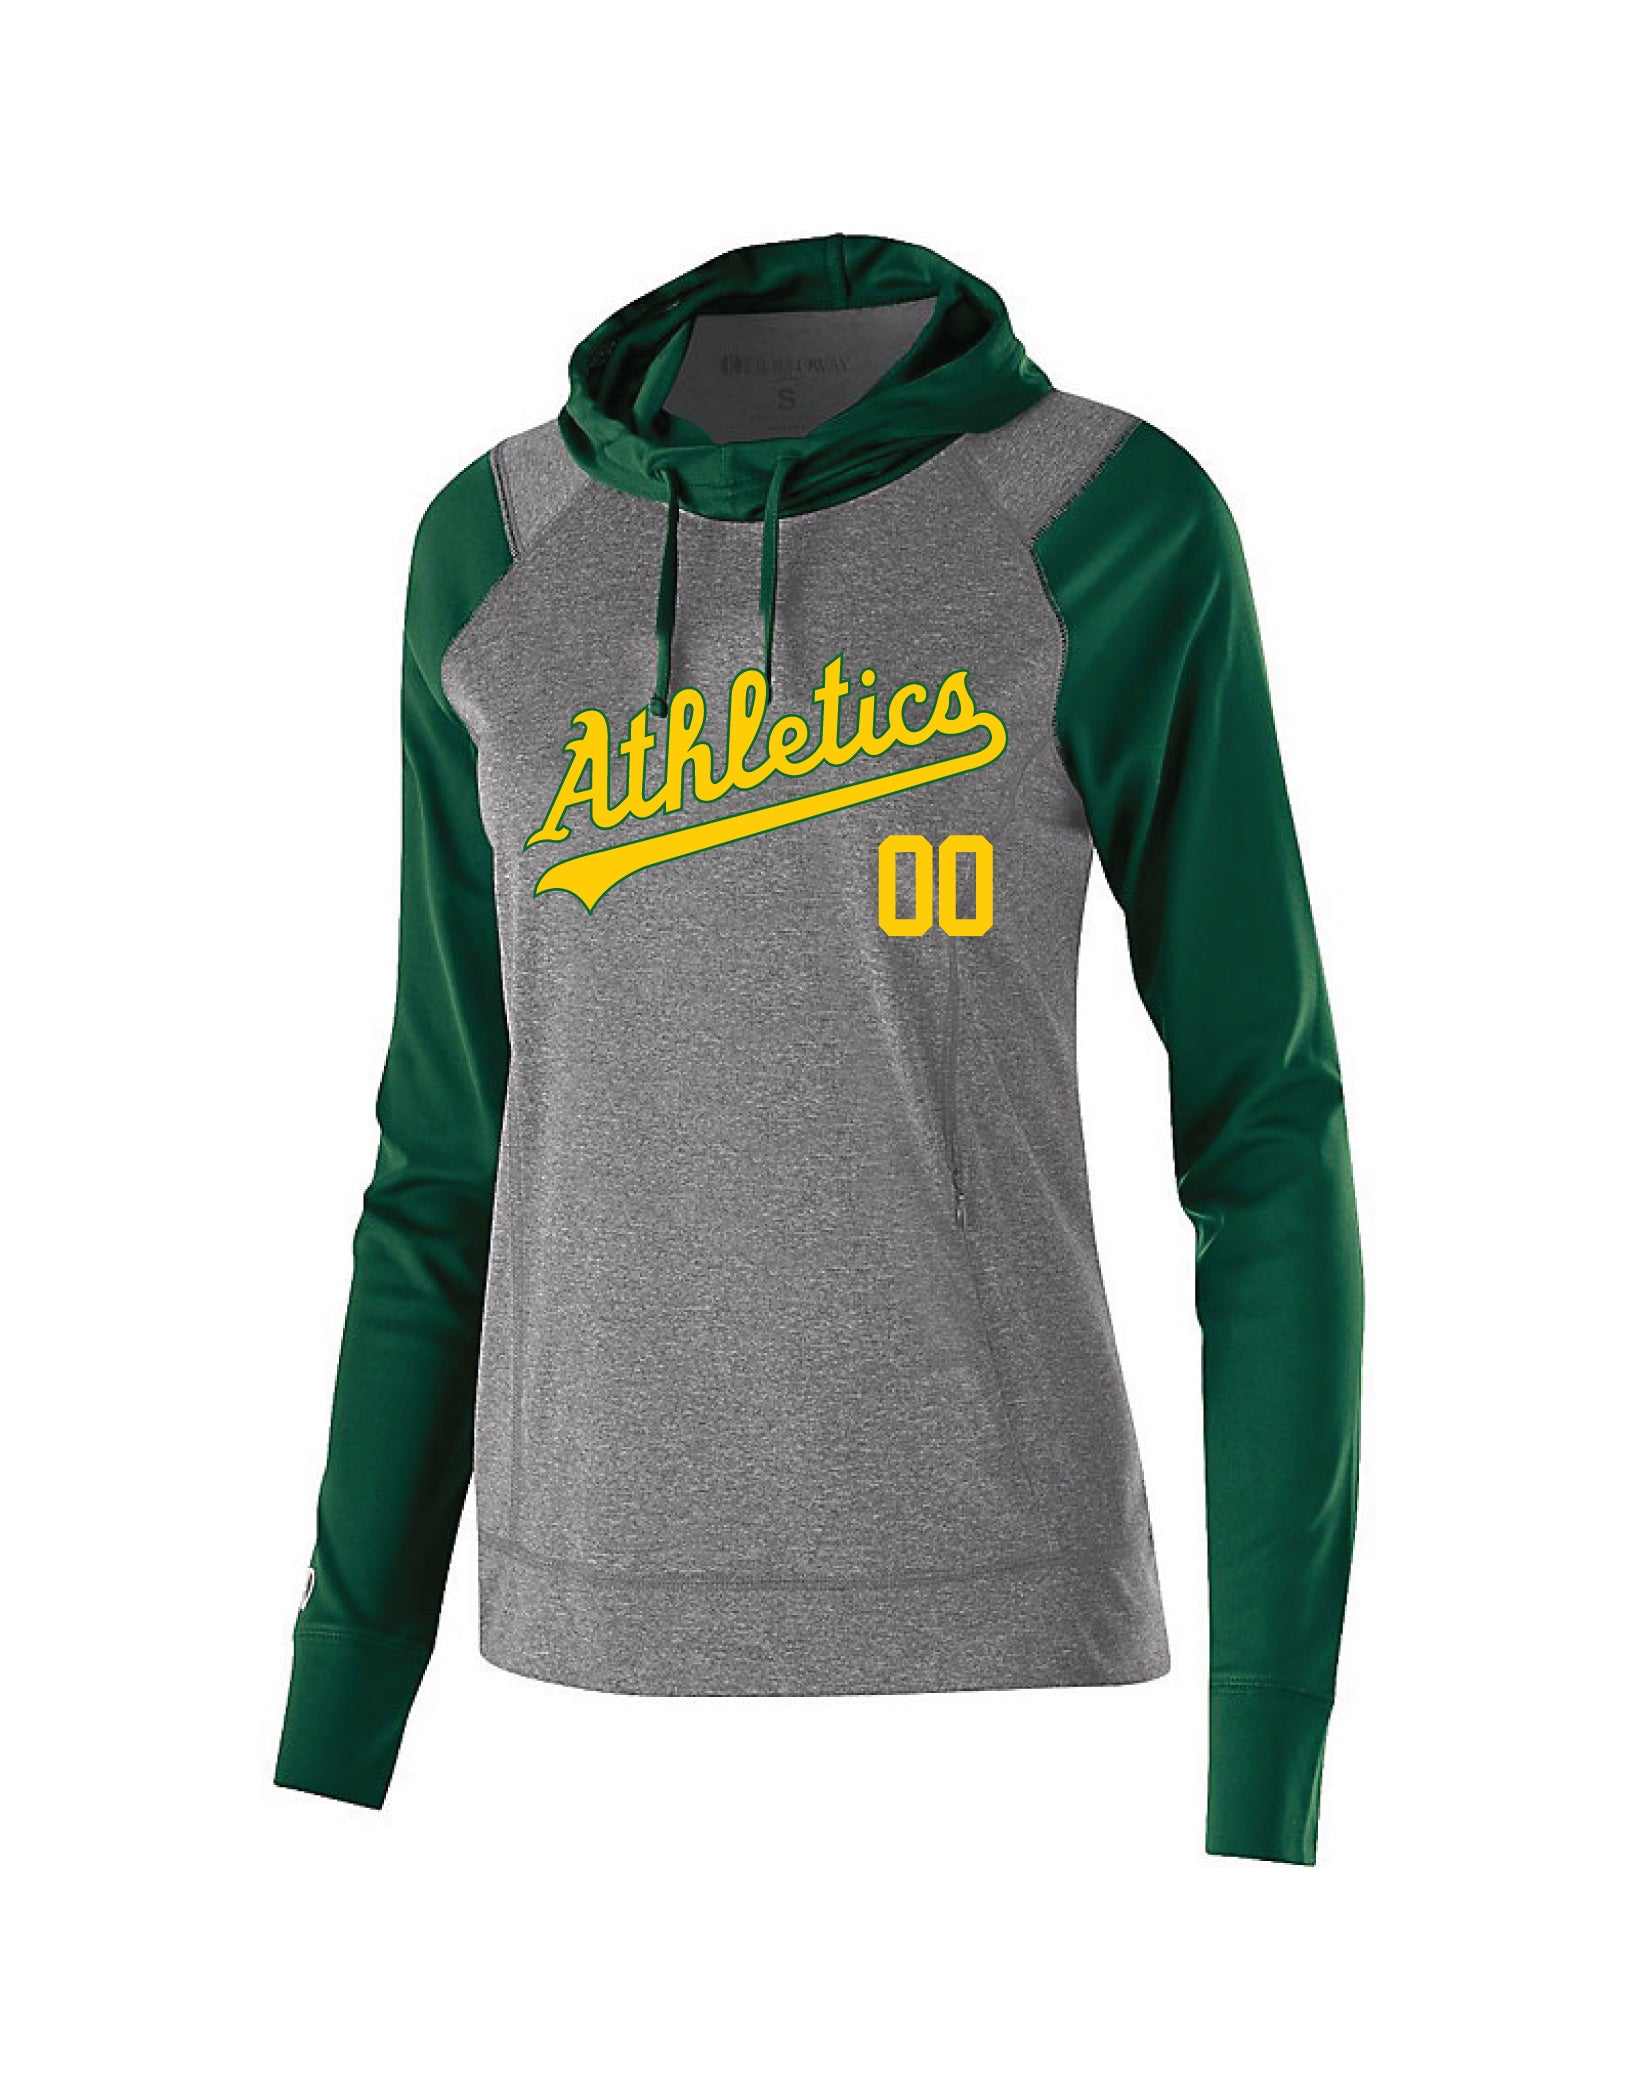 A's Light Weight Holloway Women's Performance Hoodie